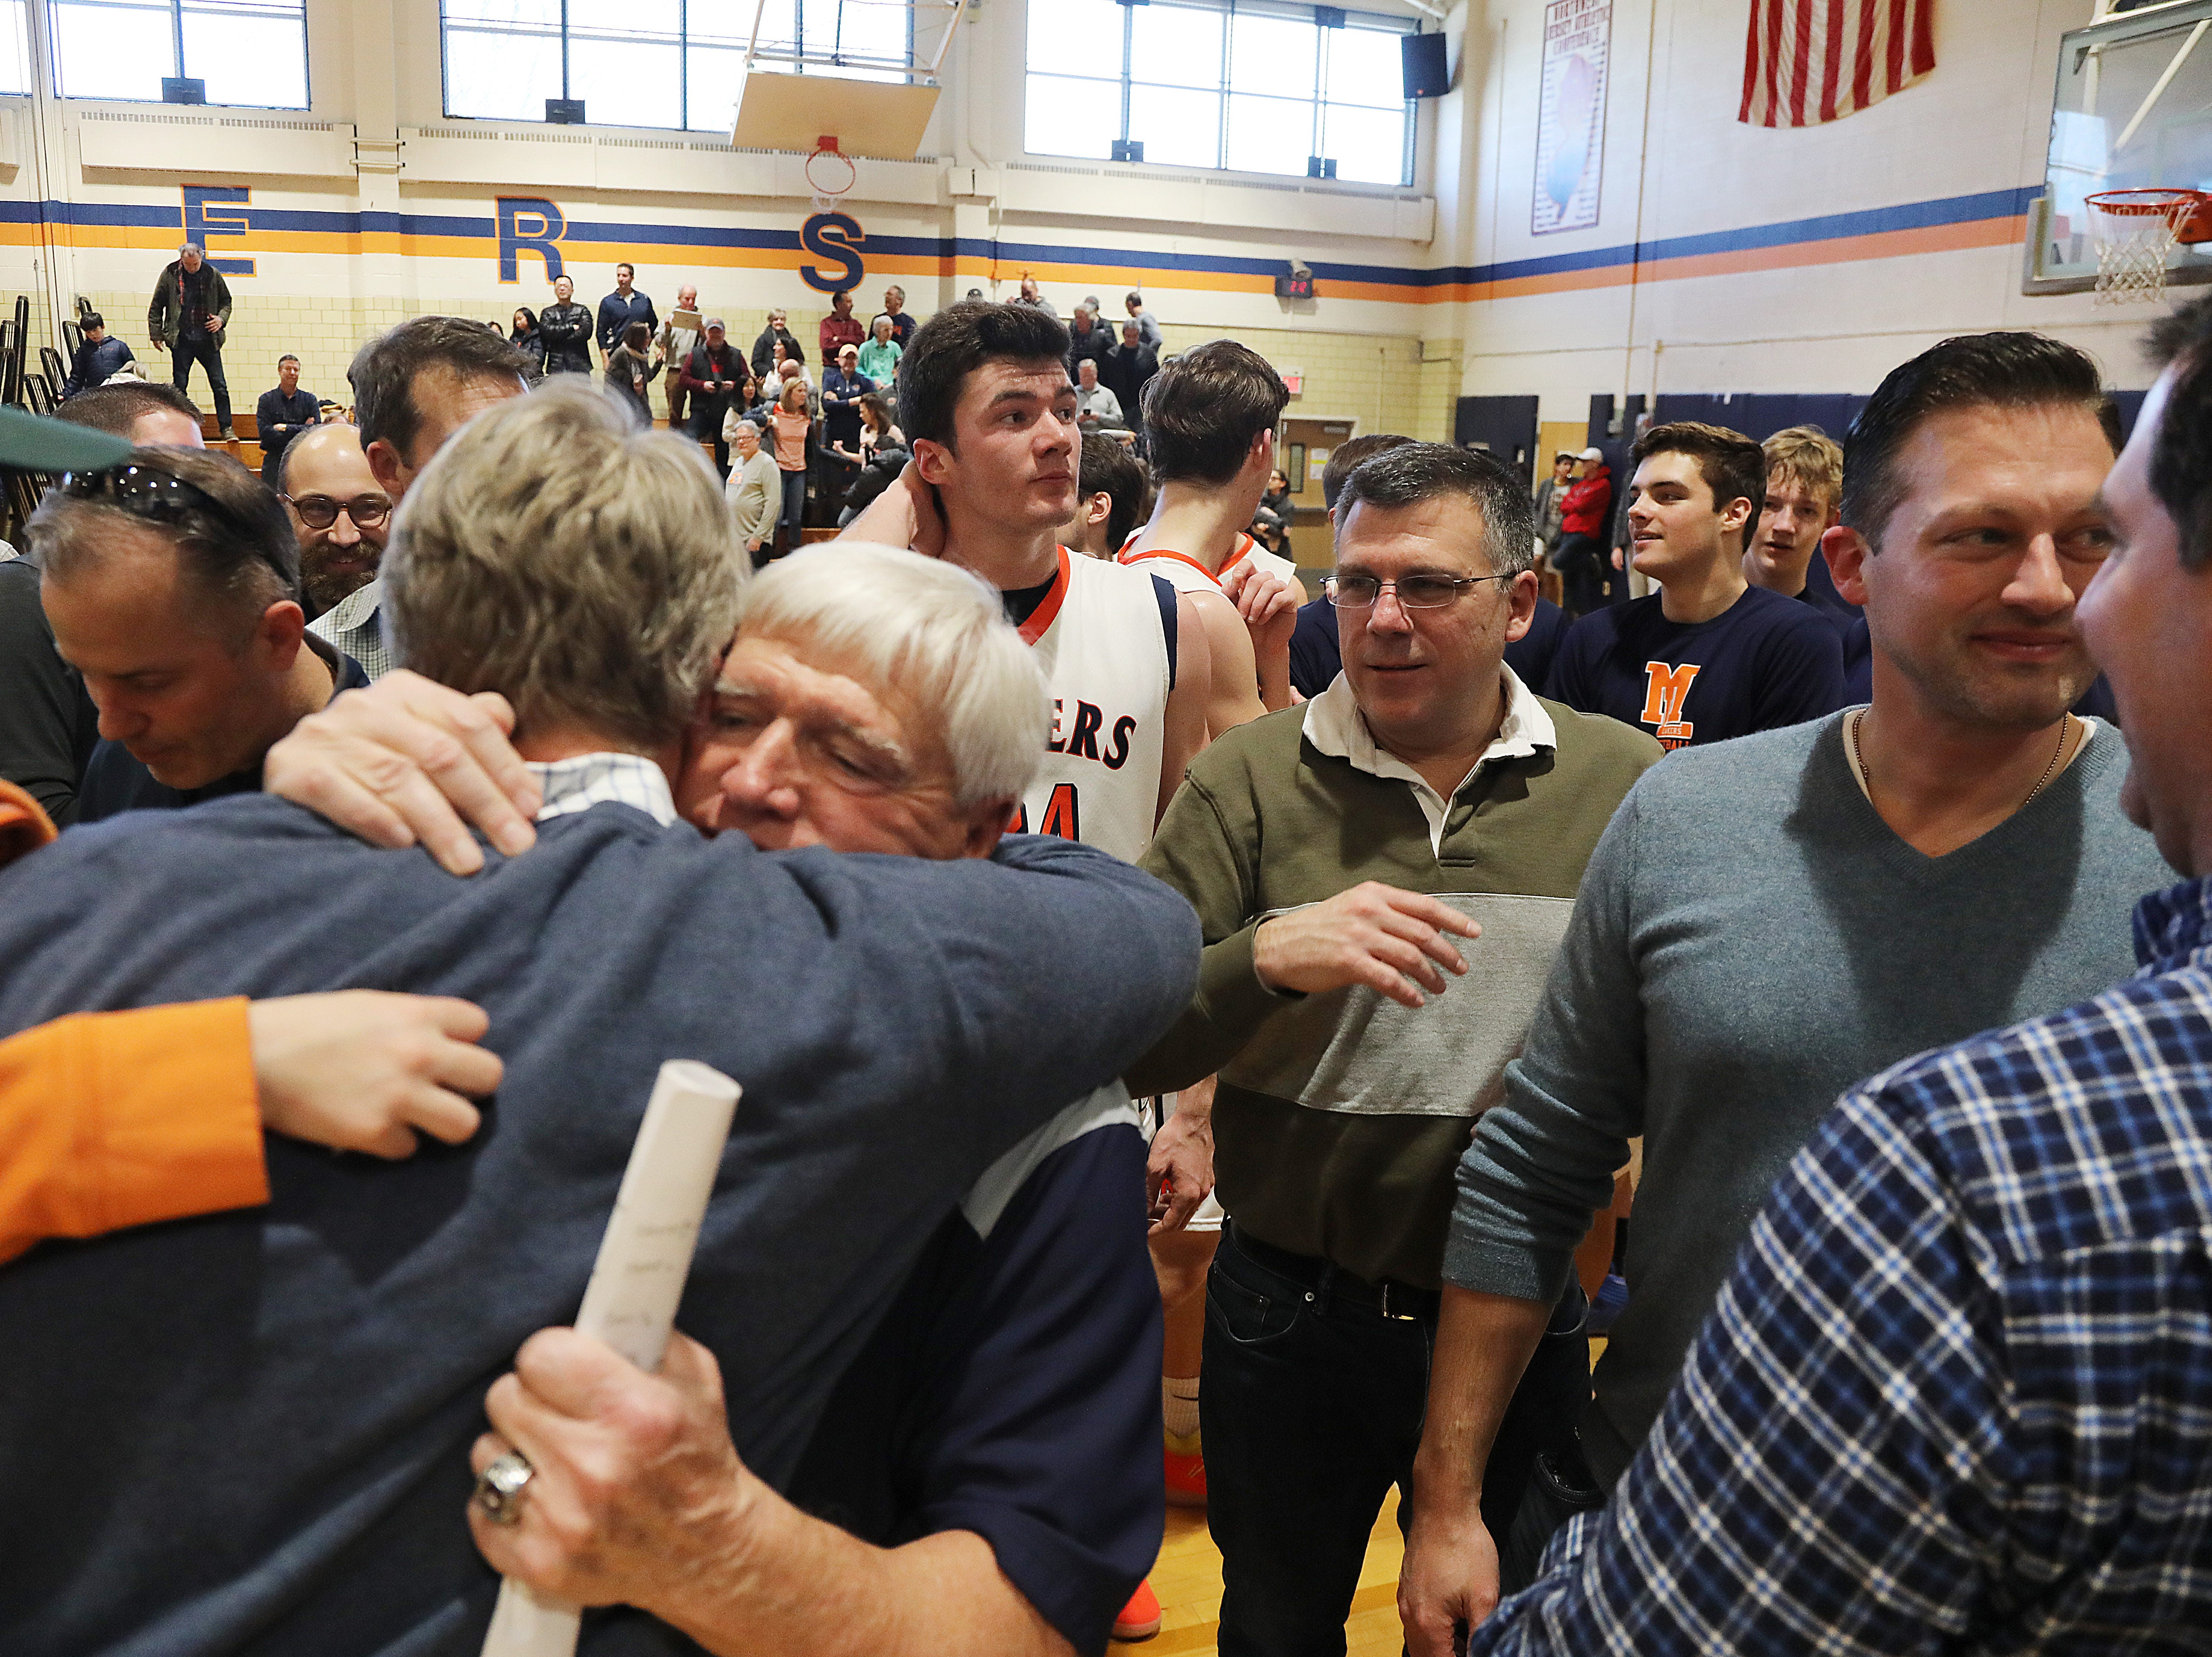 Mountain Lakes head coach John ByDook greets alumni after recording his 500th career win.